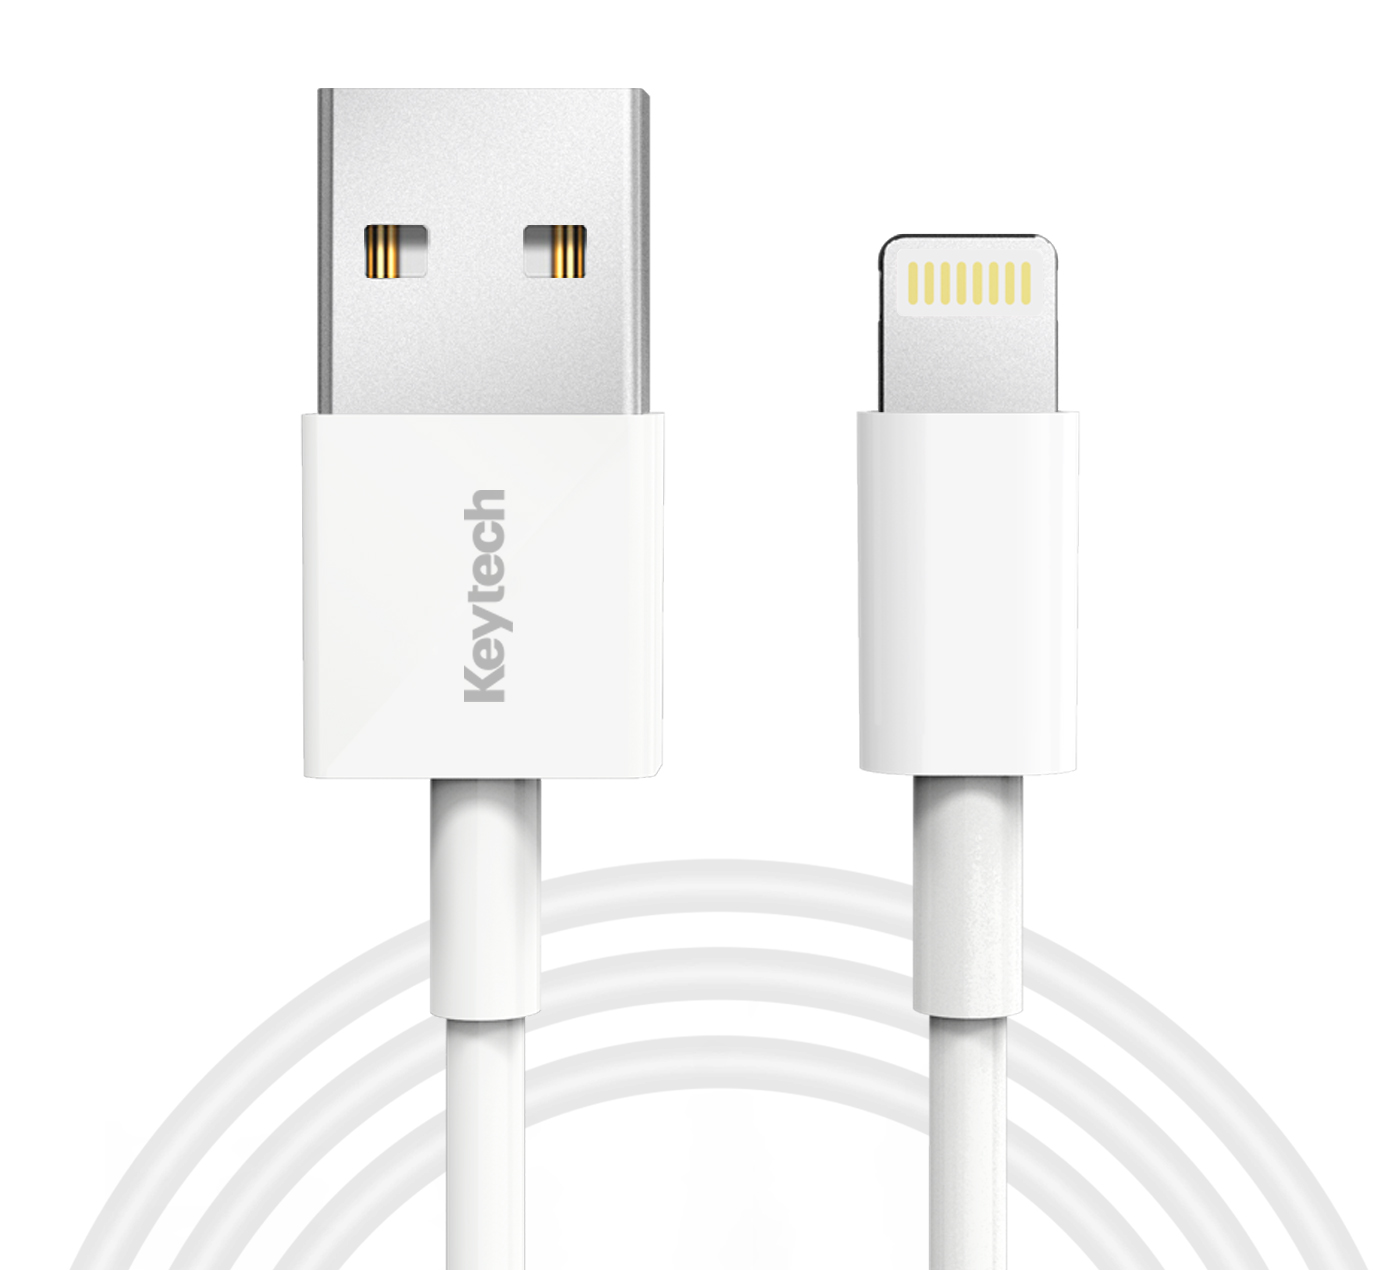 KAL002 Origineel voor iPhone USB Cable Charping Data Sync Line met 2A Fast Charping Function